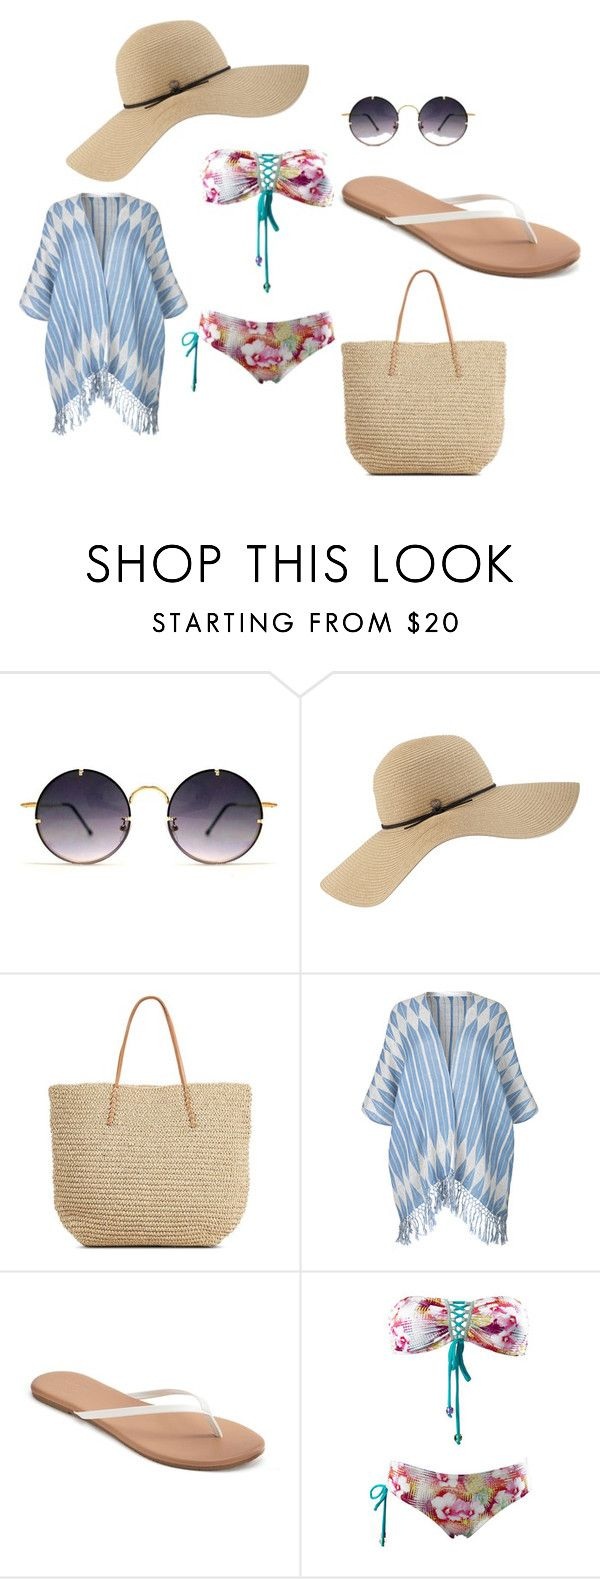 olivia beach day by olivia fairholm on polyvore featuring becks atilde  olivia beach day by olivia fairholm on polyvore featuring becksatildeparandergaard lc lauren conrad coal and spitfire clothes olivia d abo